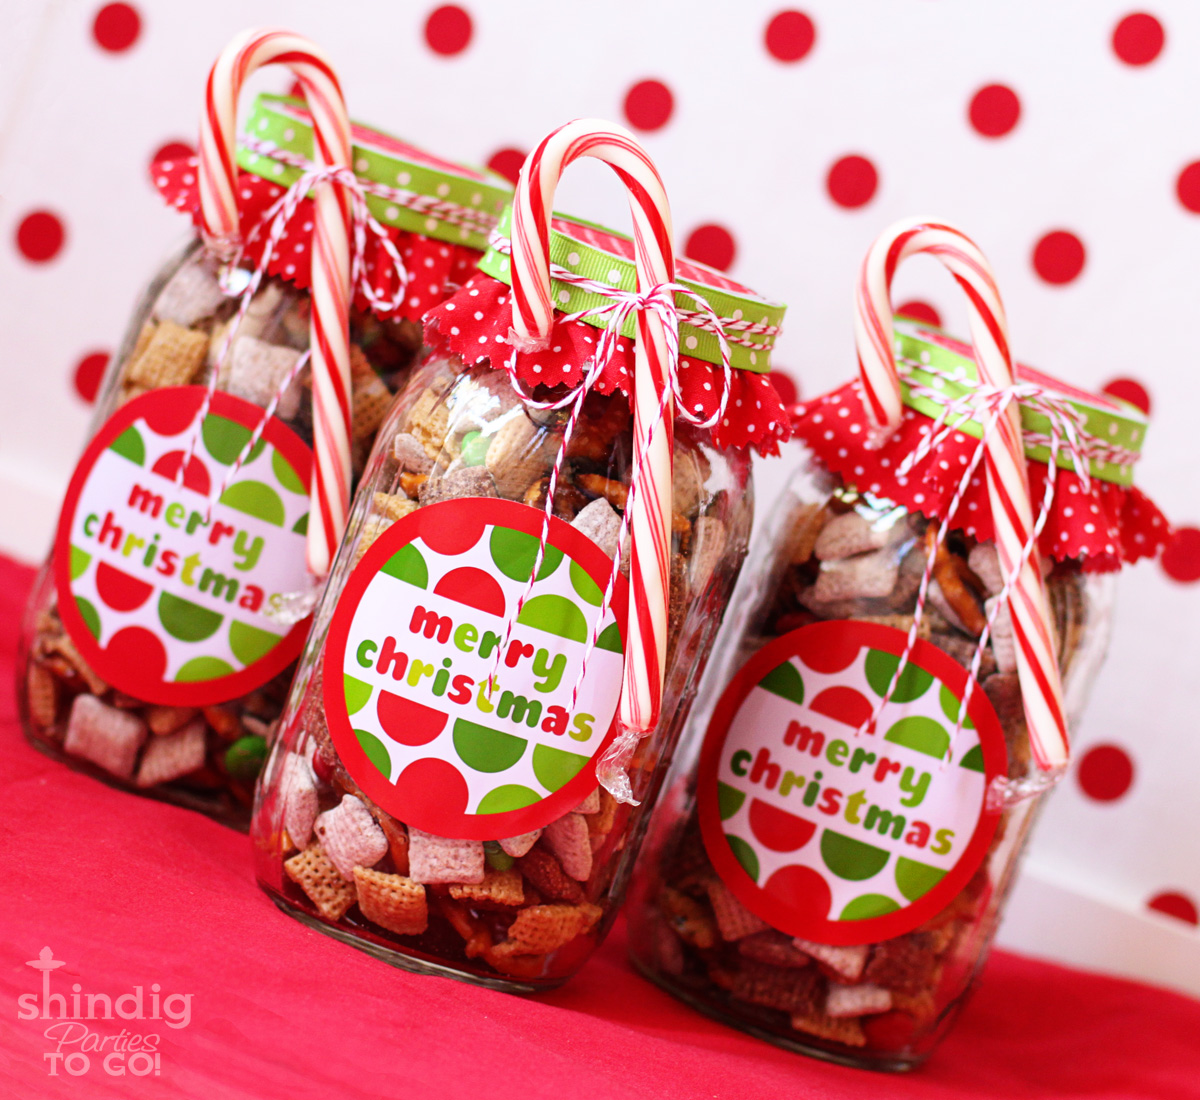 Amanda's Parties To Go: FREE Merry Christmas Tags And Gift